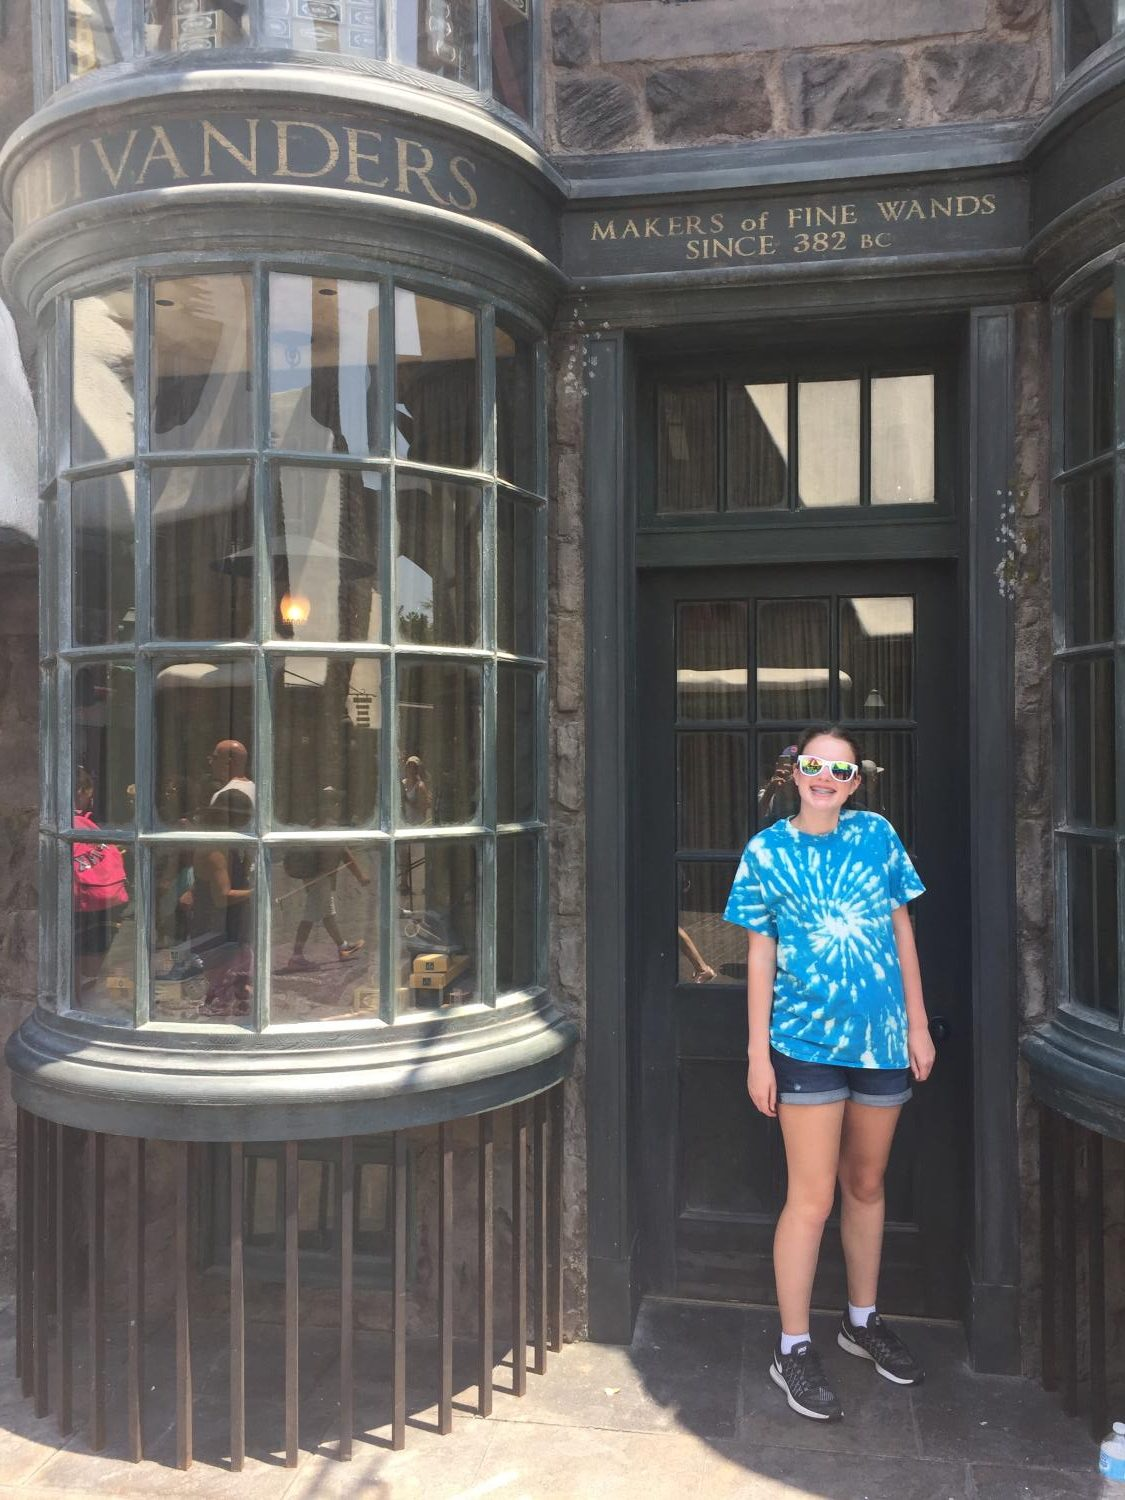 Sophie visits the Harry Potter theme park in Florida.